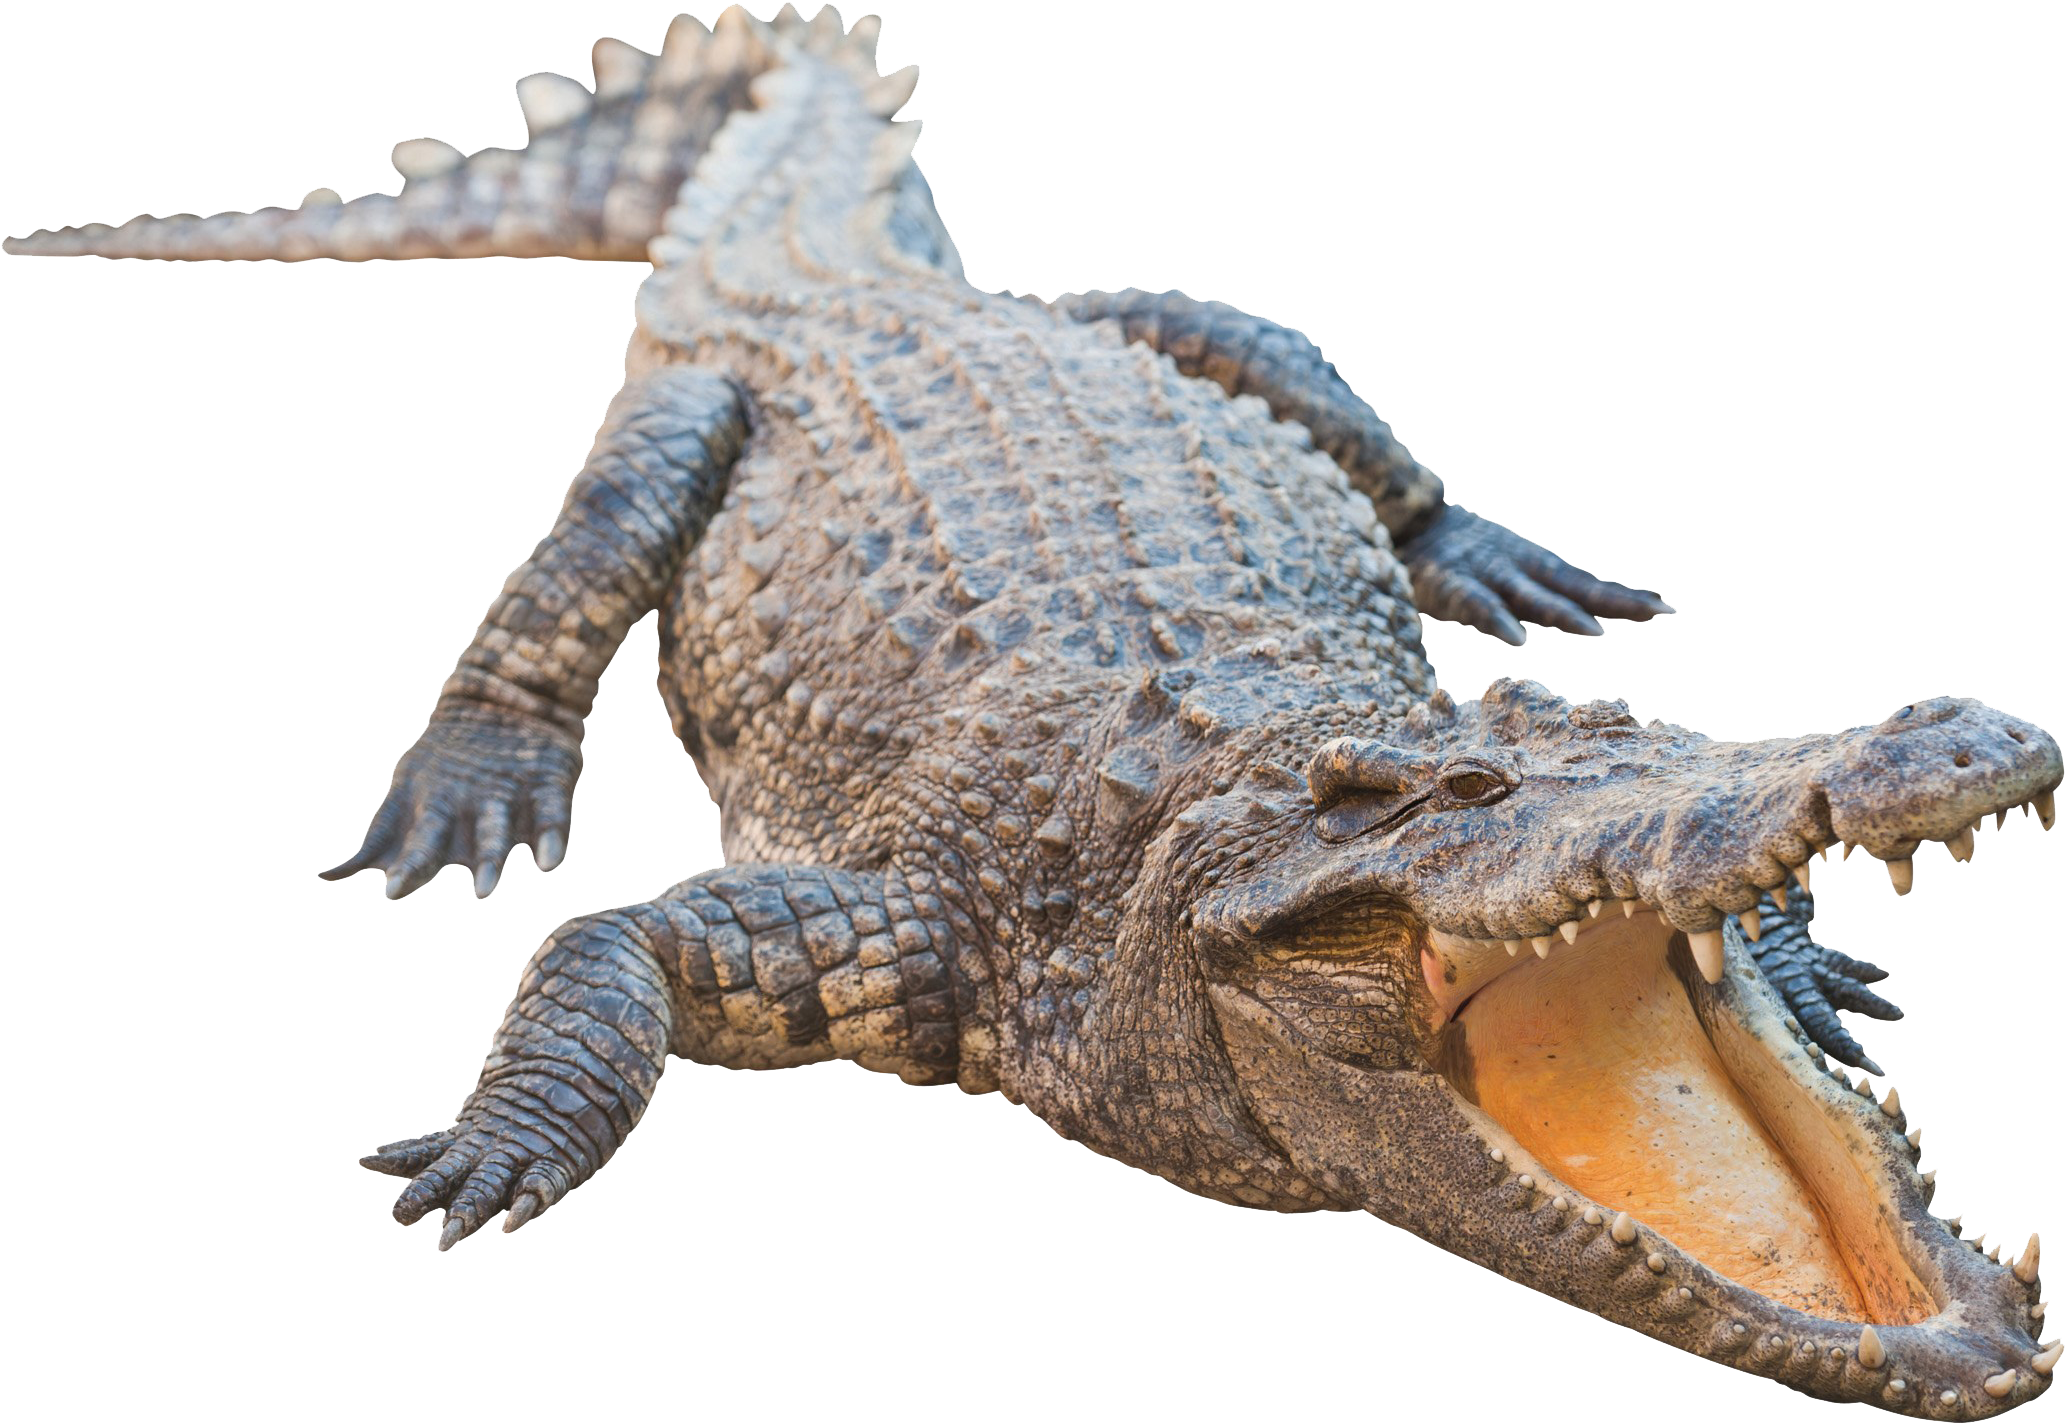 HD Real Alligator Transparent Image.